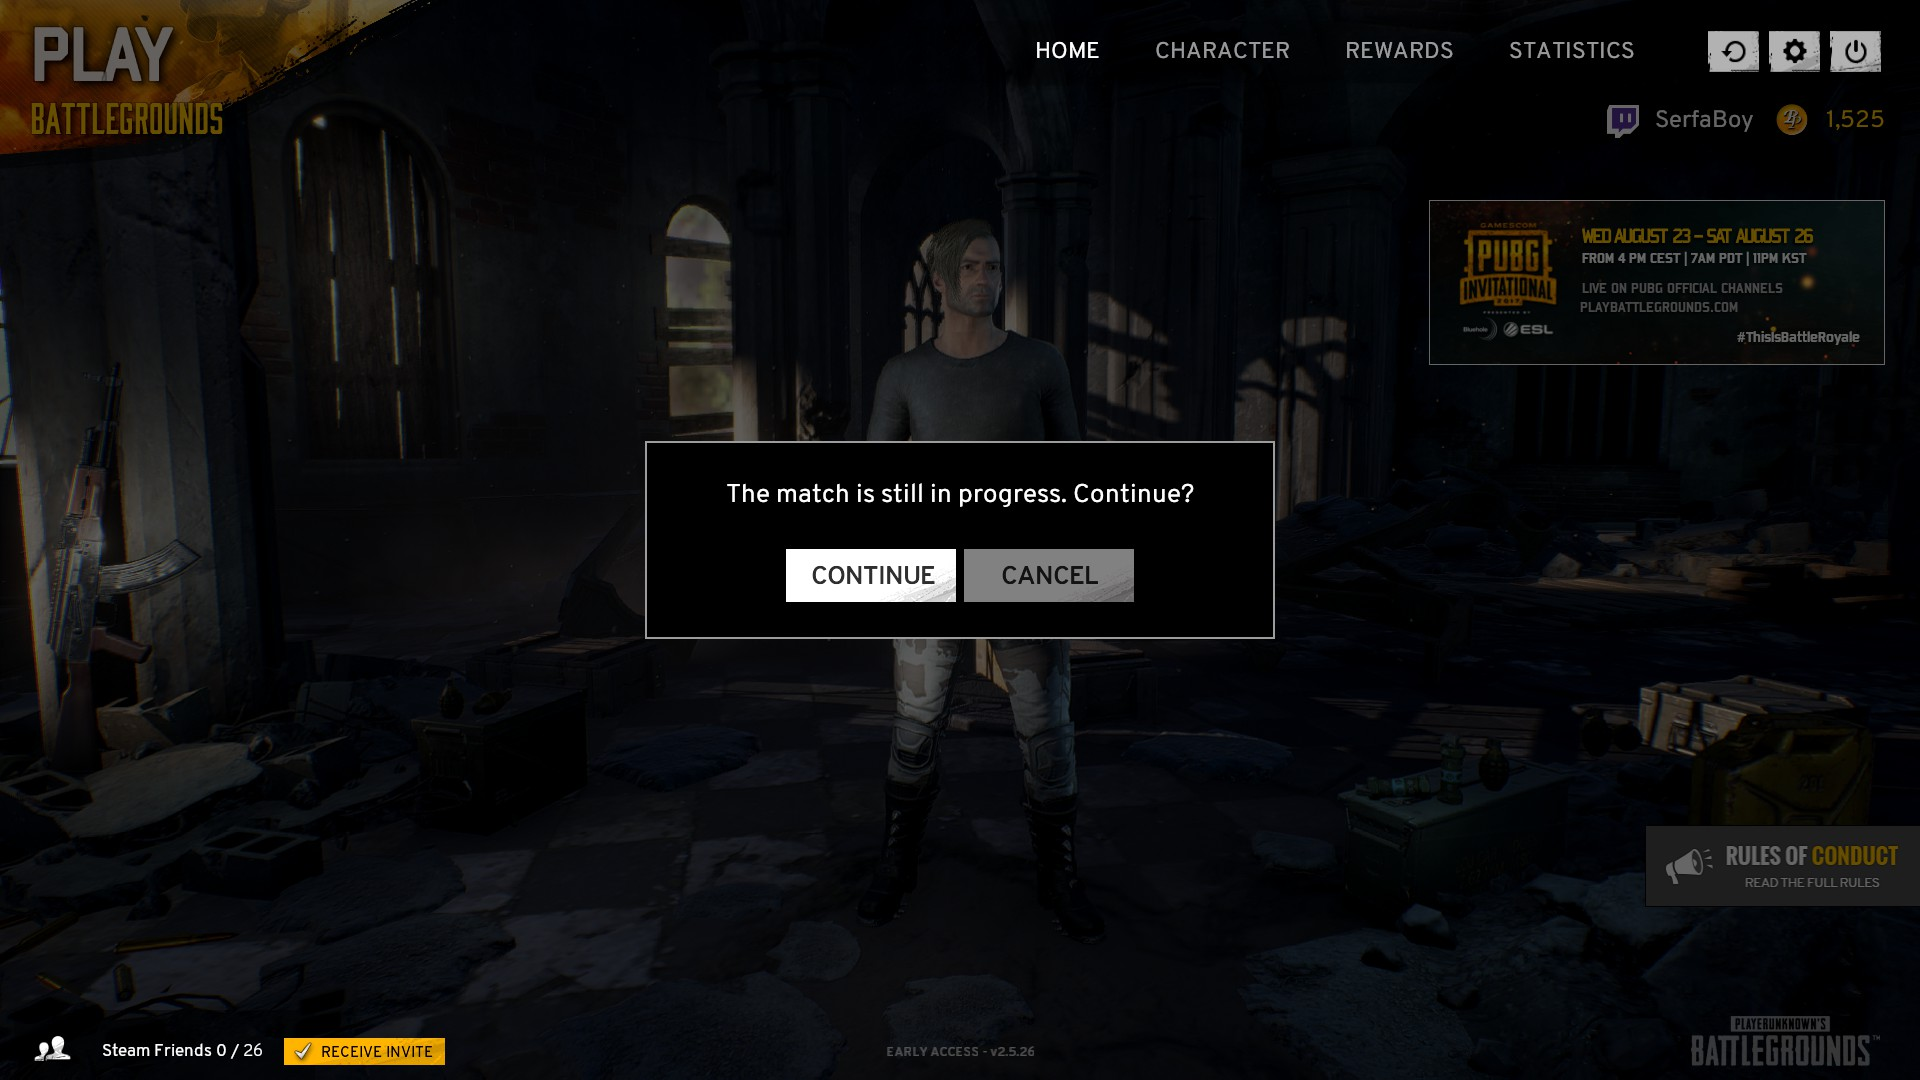 If your PUBG game crashed while in a match, you can relaunch the game and click